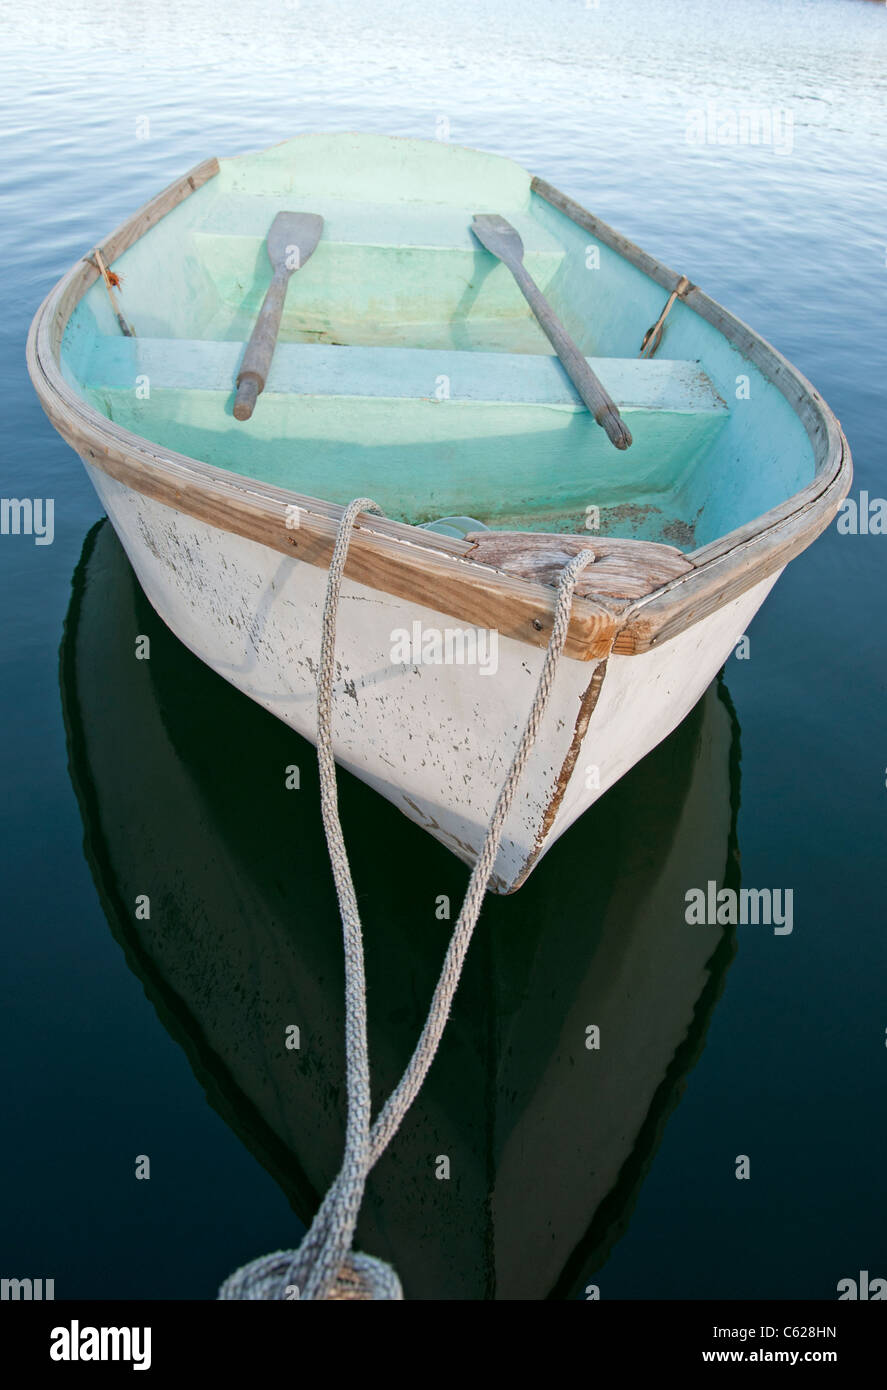 dinghy with oars tied off - Stock Image